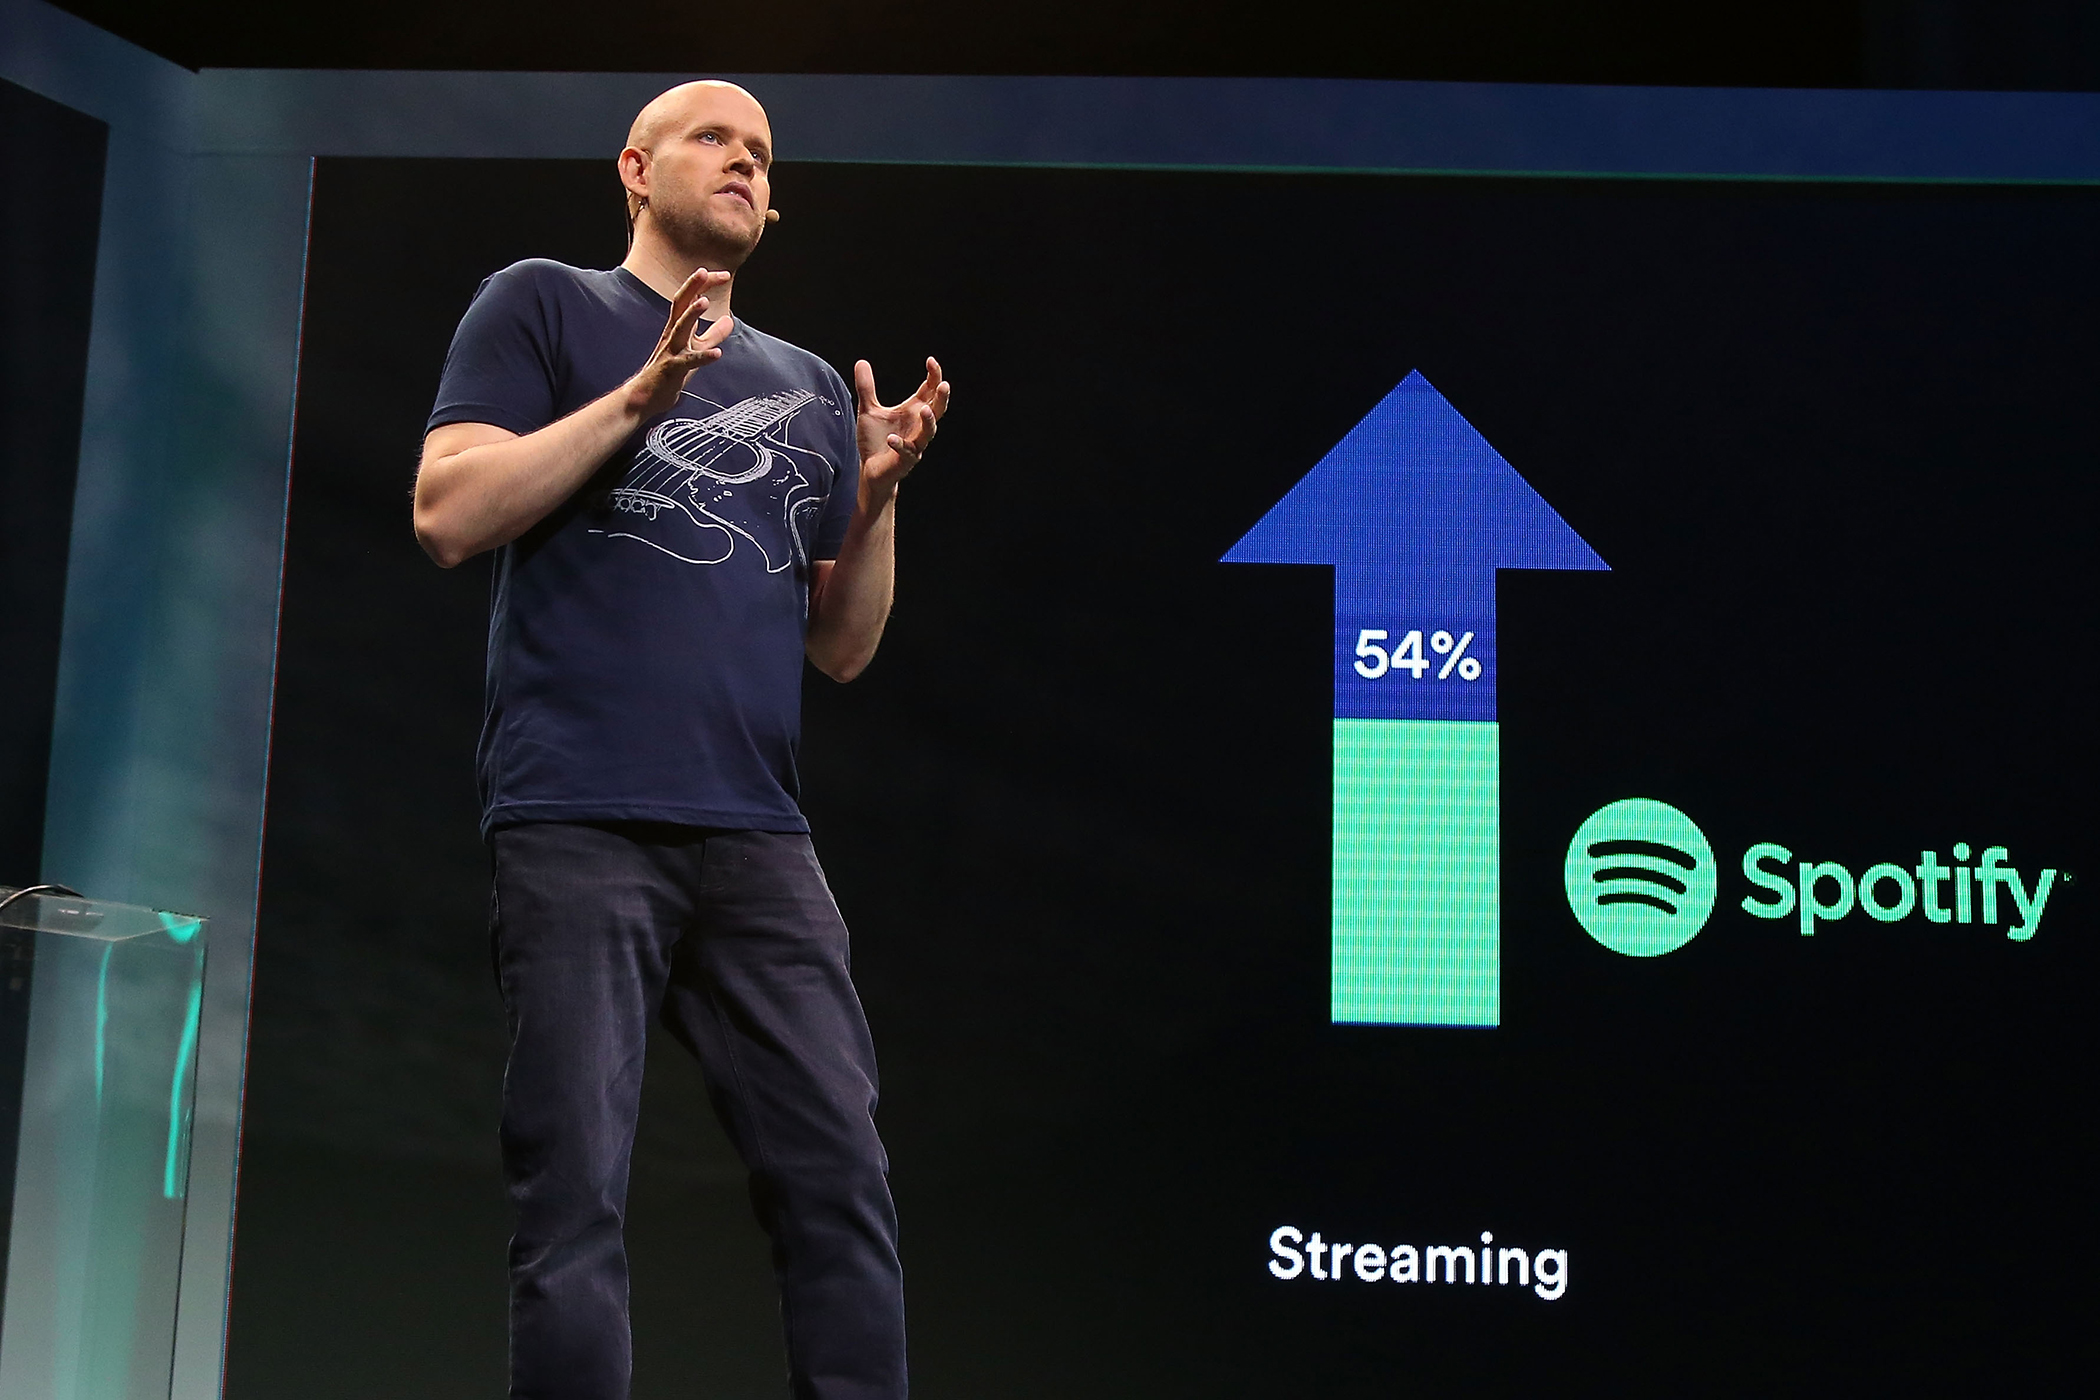 Spotify founder Daniel Ek speaks during the Spotify New Platform Launch at S.I.R. Studios on May 20, 2015 in New York City.